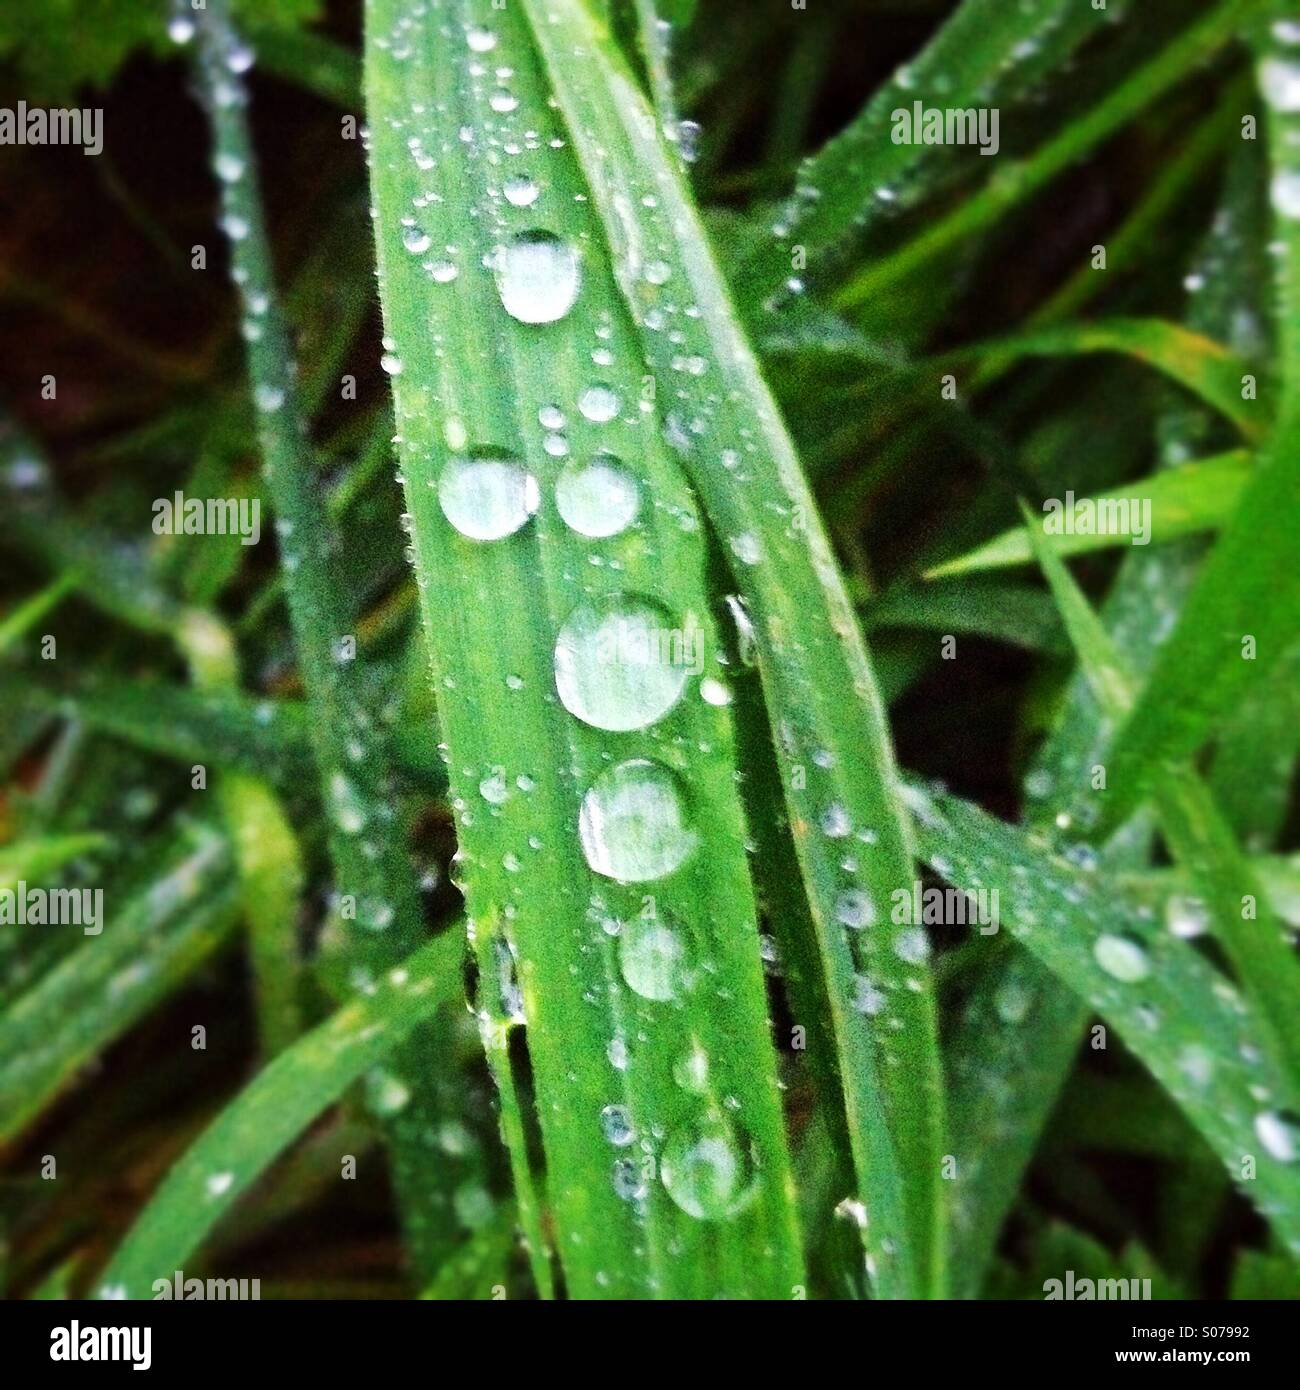 Water droplets on a blade of grass - Stock Image